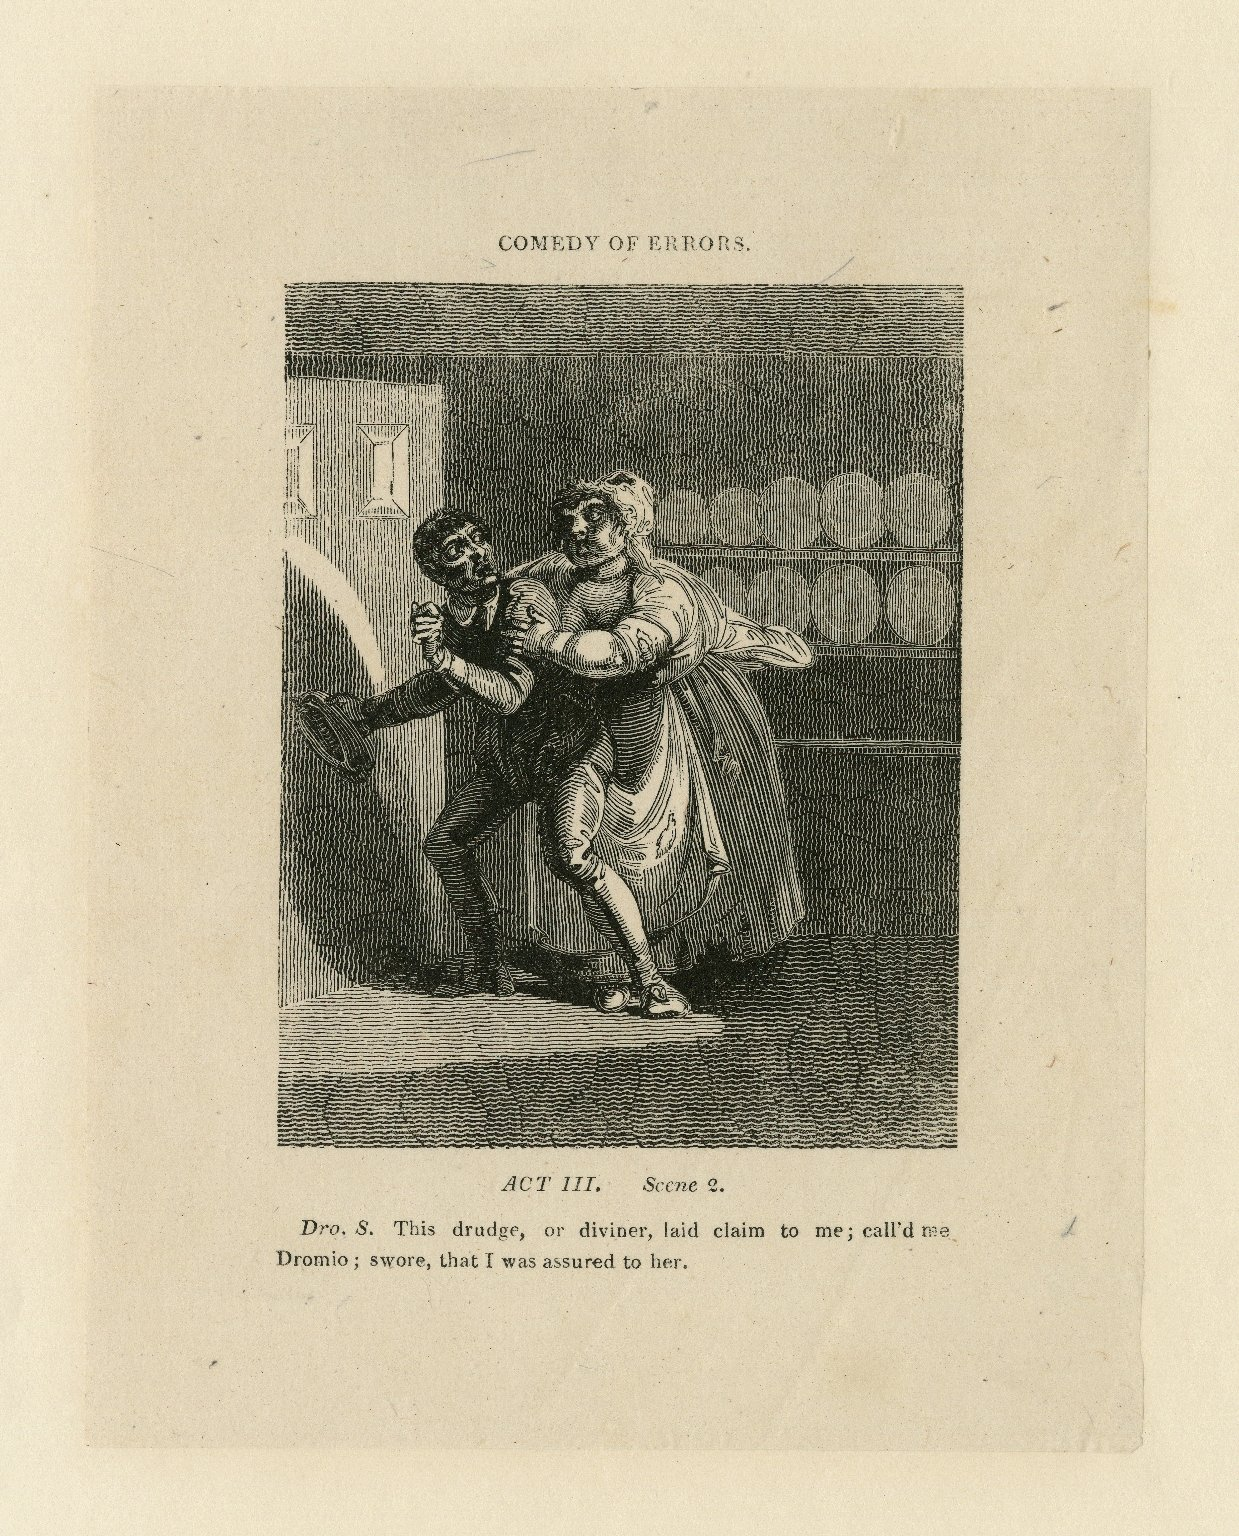 Comedy of errors, act III, scene 2, Dro. S.: This drudge, or diviner, laid claim to me; call'd me Dromio; swore that I was assured to her [graphic] / engraved by Allen Robert Branston ; [John Thurston].